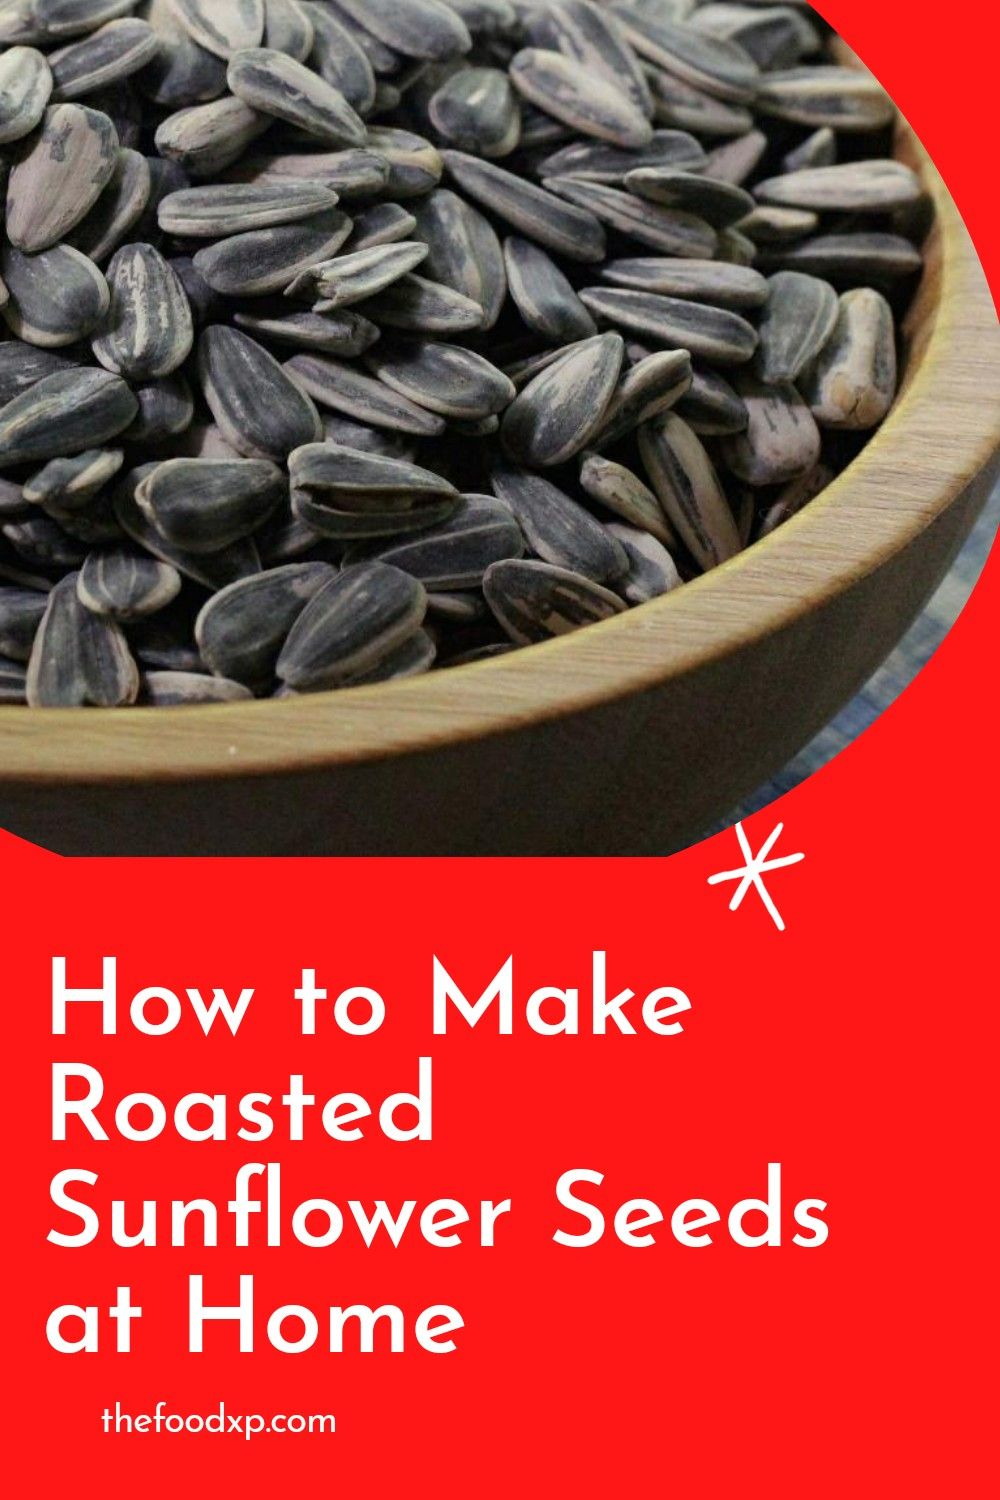 How To Make Roasted Sunflower Seeds At Home Roasted Sunflower Seeds Recipe Sunflower Seed Recipes Sunflower Seeds Benefits